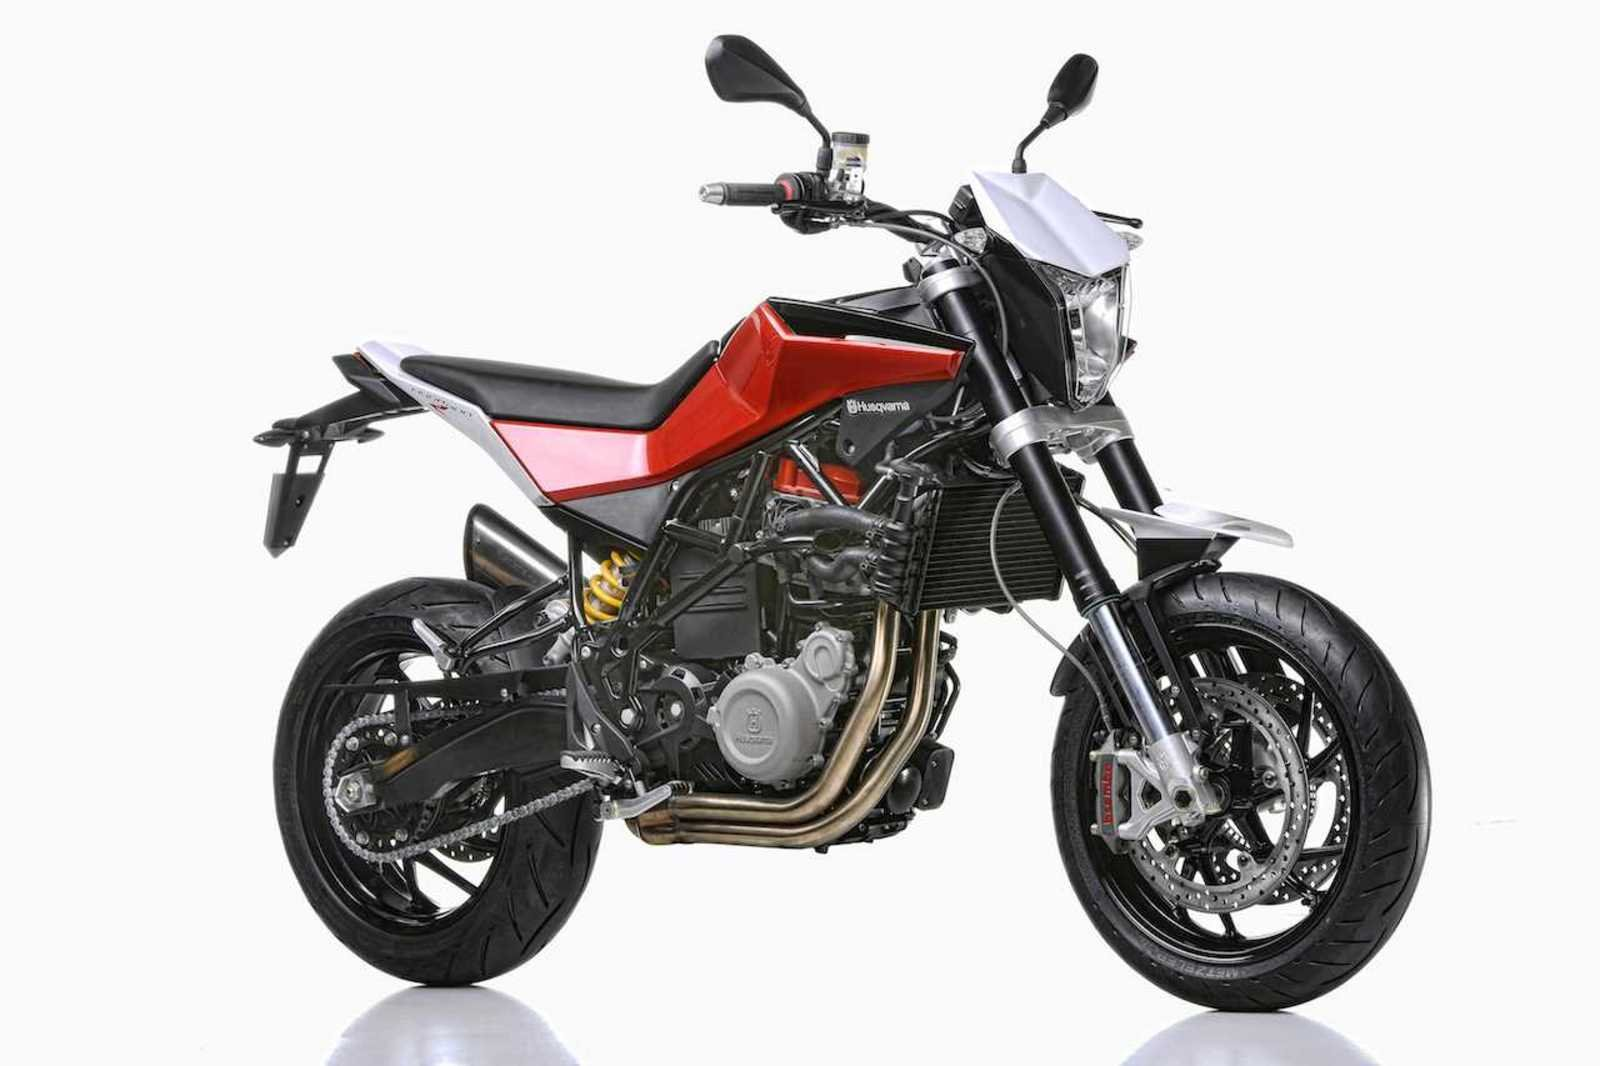 2013 husqvarna nuda 900r review top speed. Black Bedroom Furniture Sets. Home Design Ideas